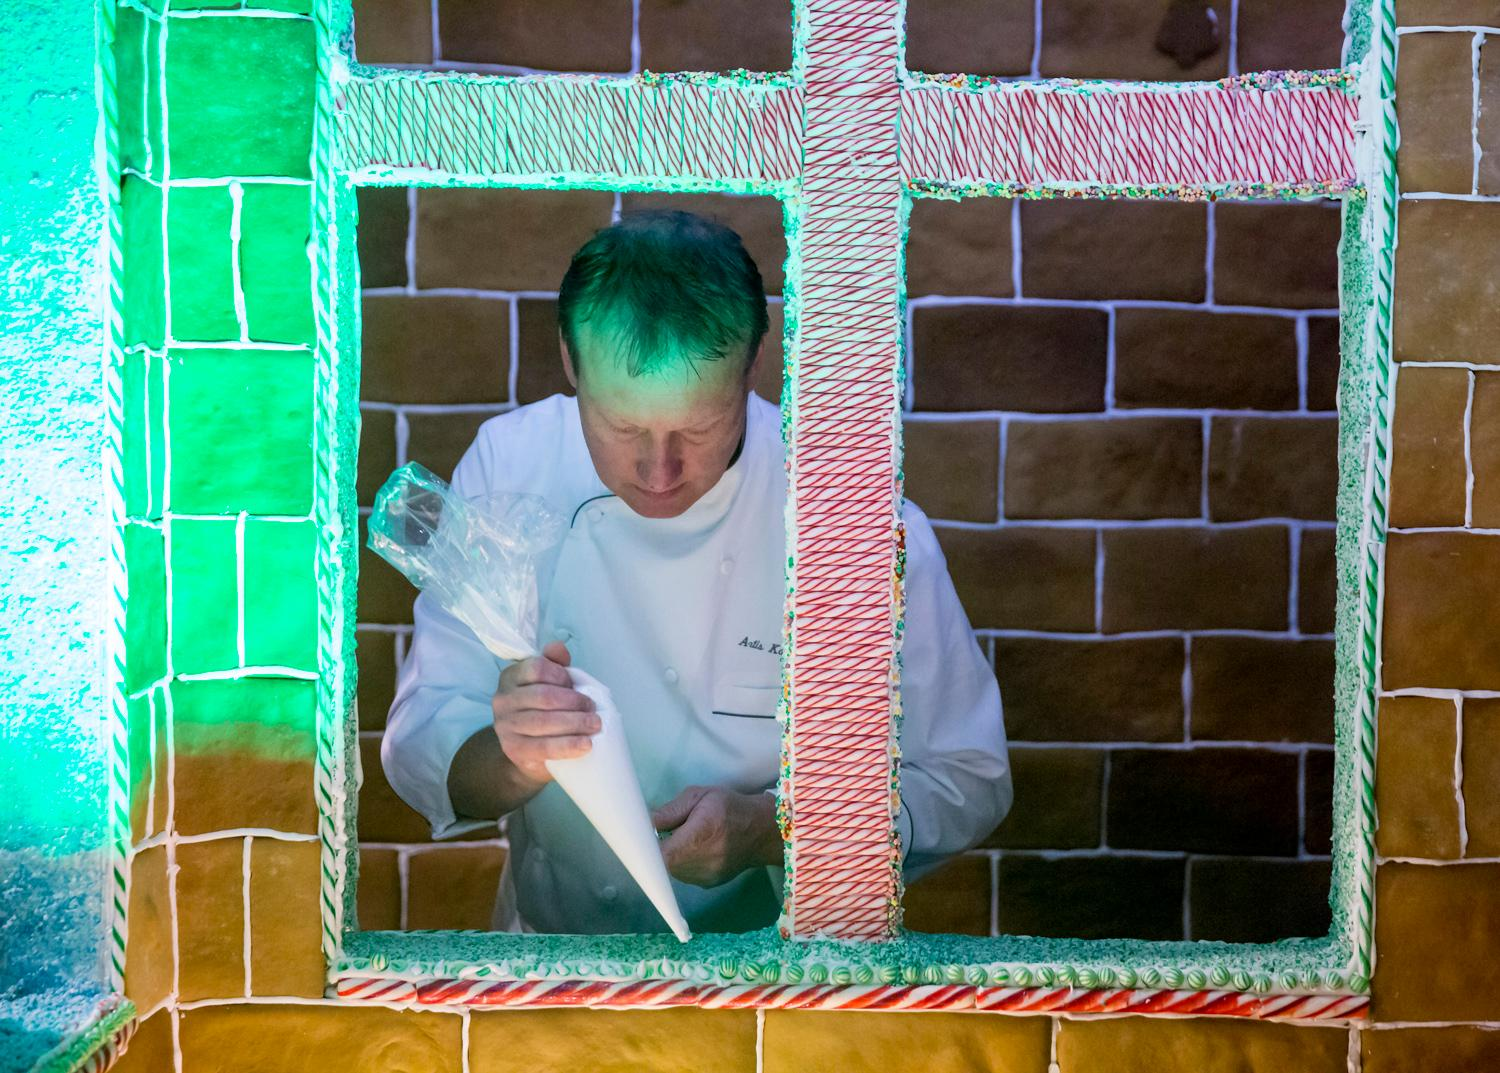 Executive pastry chef Artis Kalsons replaces candies on his lifesize gingerbread house after hungry kids picked them off at the entrance of the Fairmount Olympic Hotel in downtown Seattle. Talk about a dream home! Well - for a person with a sweet tooth that is! The creation of this colossal Gingerbread house has been going on since August and took eight engineers, 15 culinary stars, and hundreds of helping hands. The recipe looks like this: 960 pounds of flour, 20 gallons of milk, 75 gallons of icing, 80 pounds of molasses, 80 pounds of butter, 3 pounds of cinnamon, 3 pounds of nutmeg, 170 pounds of brown sugar, 3 pounds of anise, and 3 pounds of clove! Phew. It gets better... The finished product has 4,100 Gingerbread tiles, 2,500 candy canes, 1,000 spearmints, 50 pounds of crushed candy and 144 feet of candy ropes. I think we just got a sugar contact high. If you haven't ventured down there, this gingerbread house in a must-see, folks! (Image: Sy Bean / Seattle Refined).